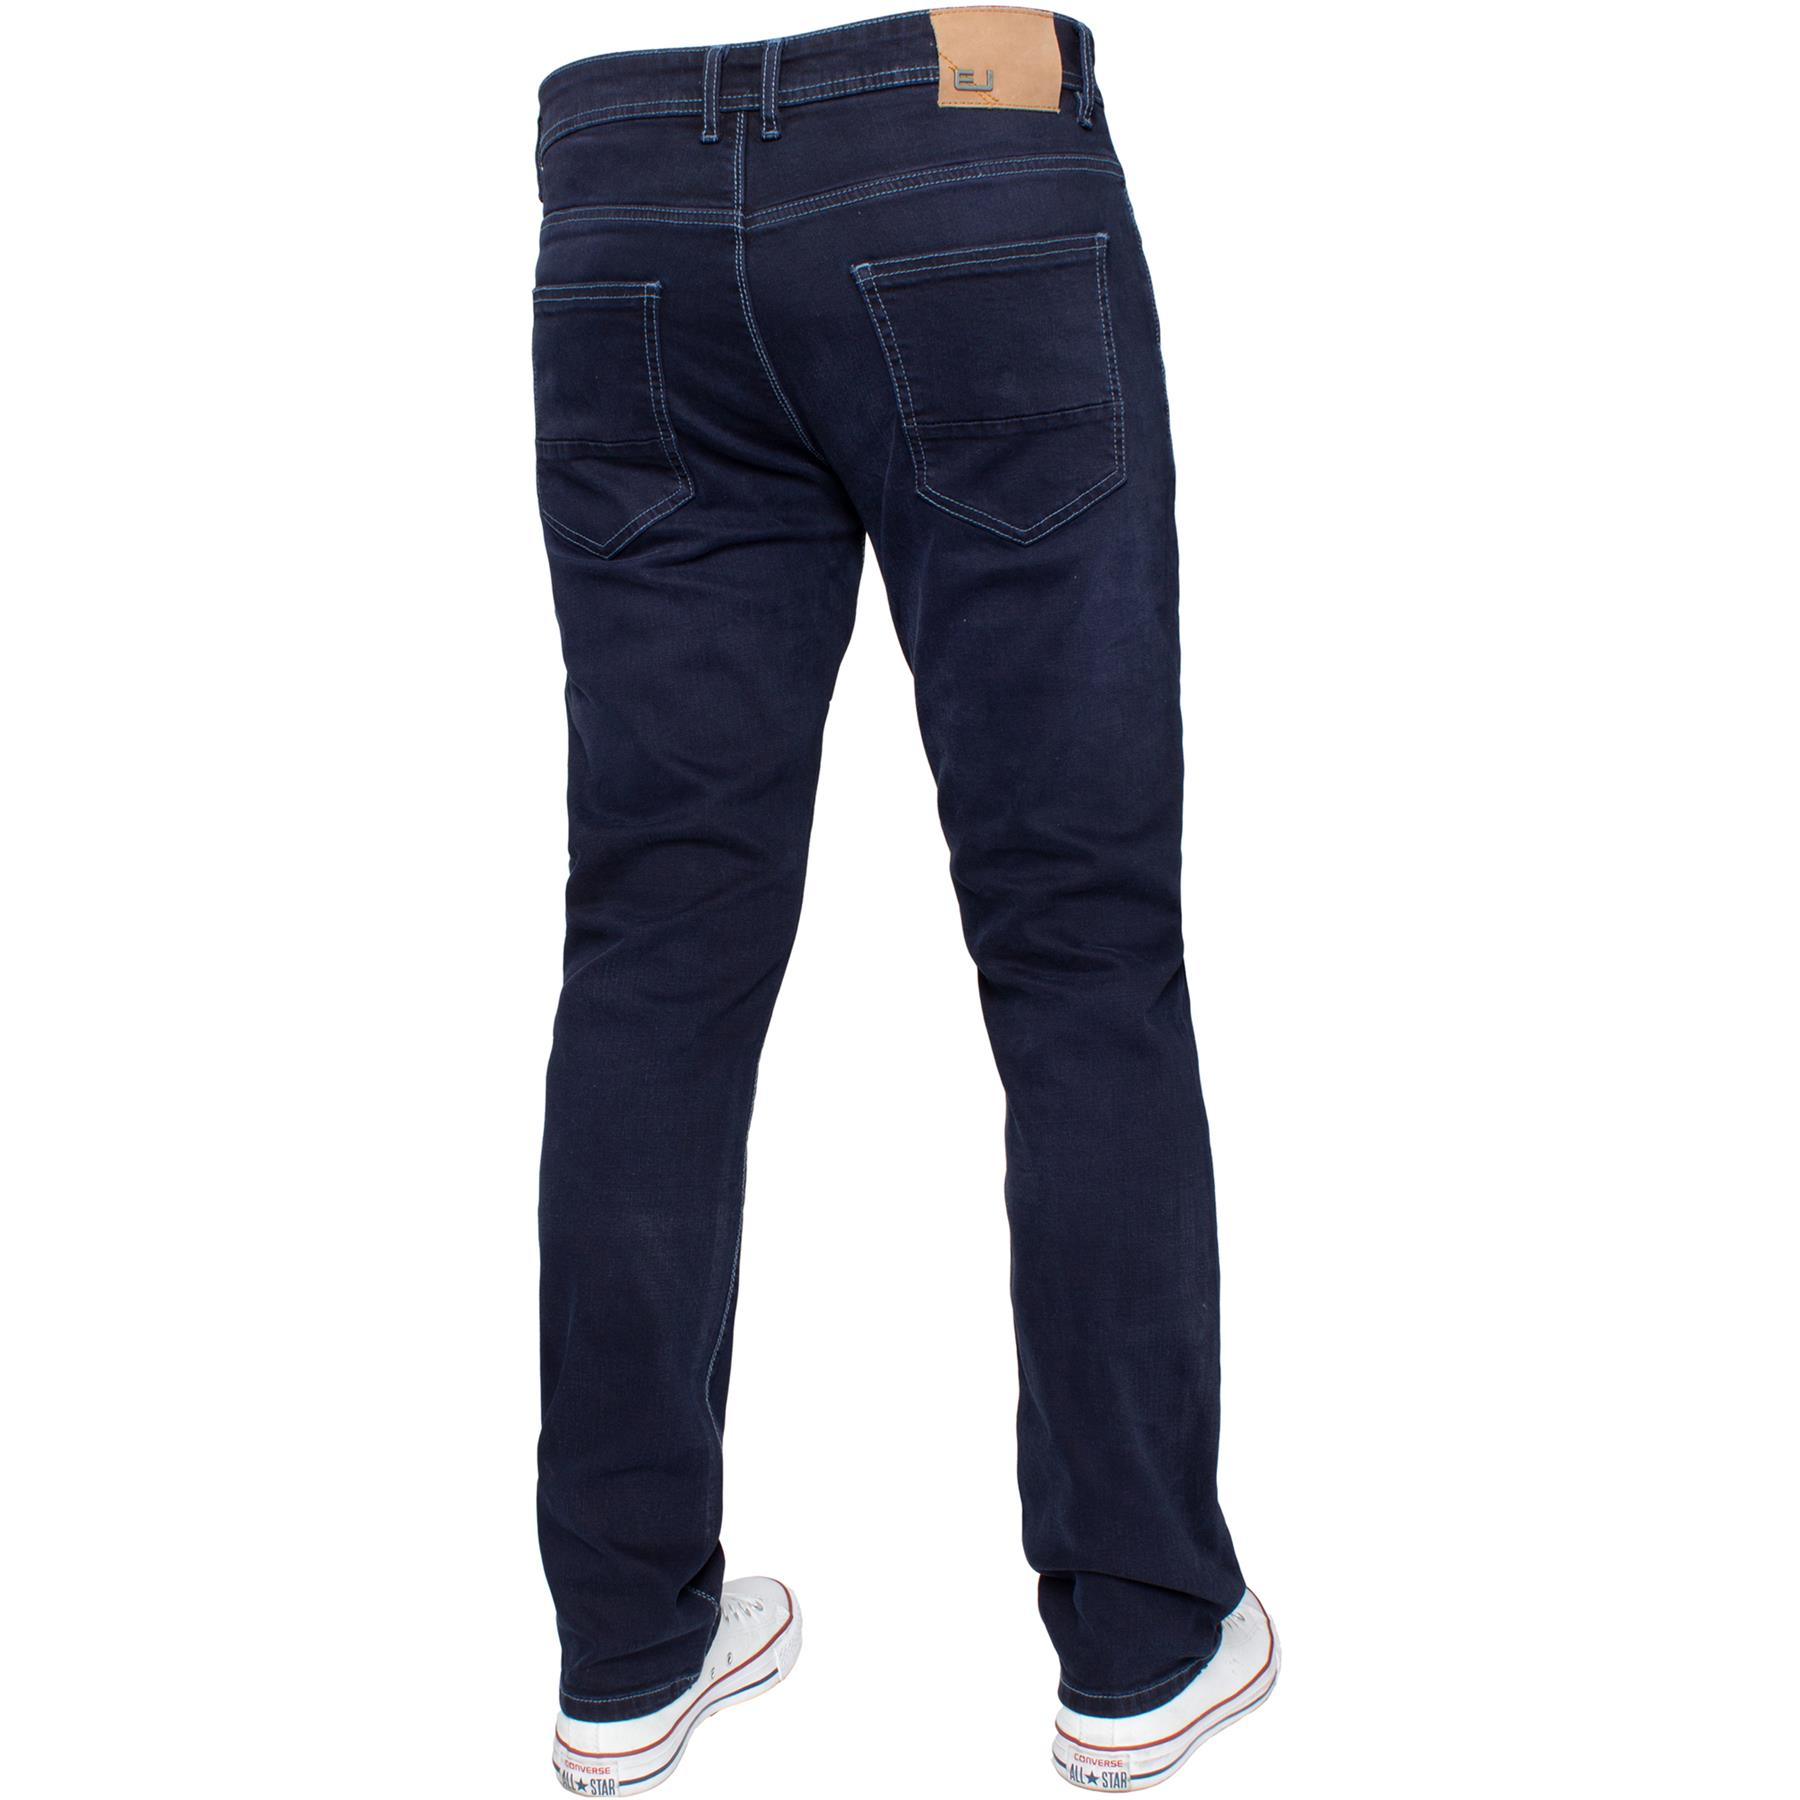 Eto-Designer-Mens-Tapered-Jeans-Slim-Fit-Stretch-Denim-Trouser-Pants-All-Waists thumbnail 21